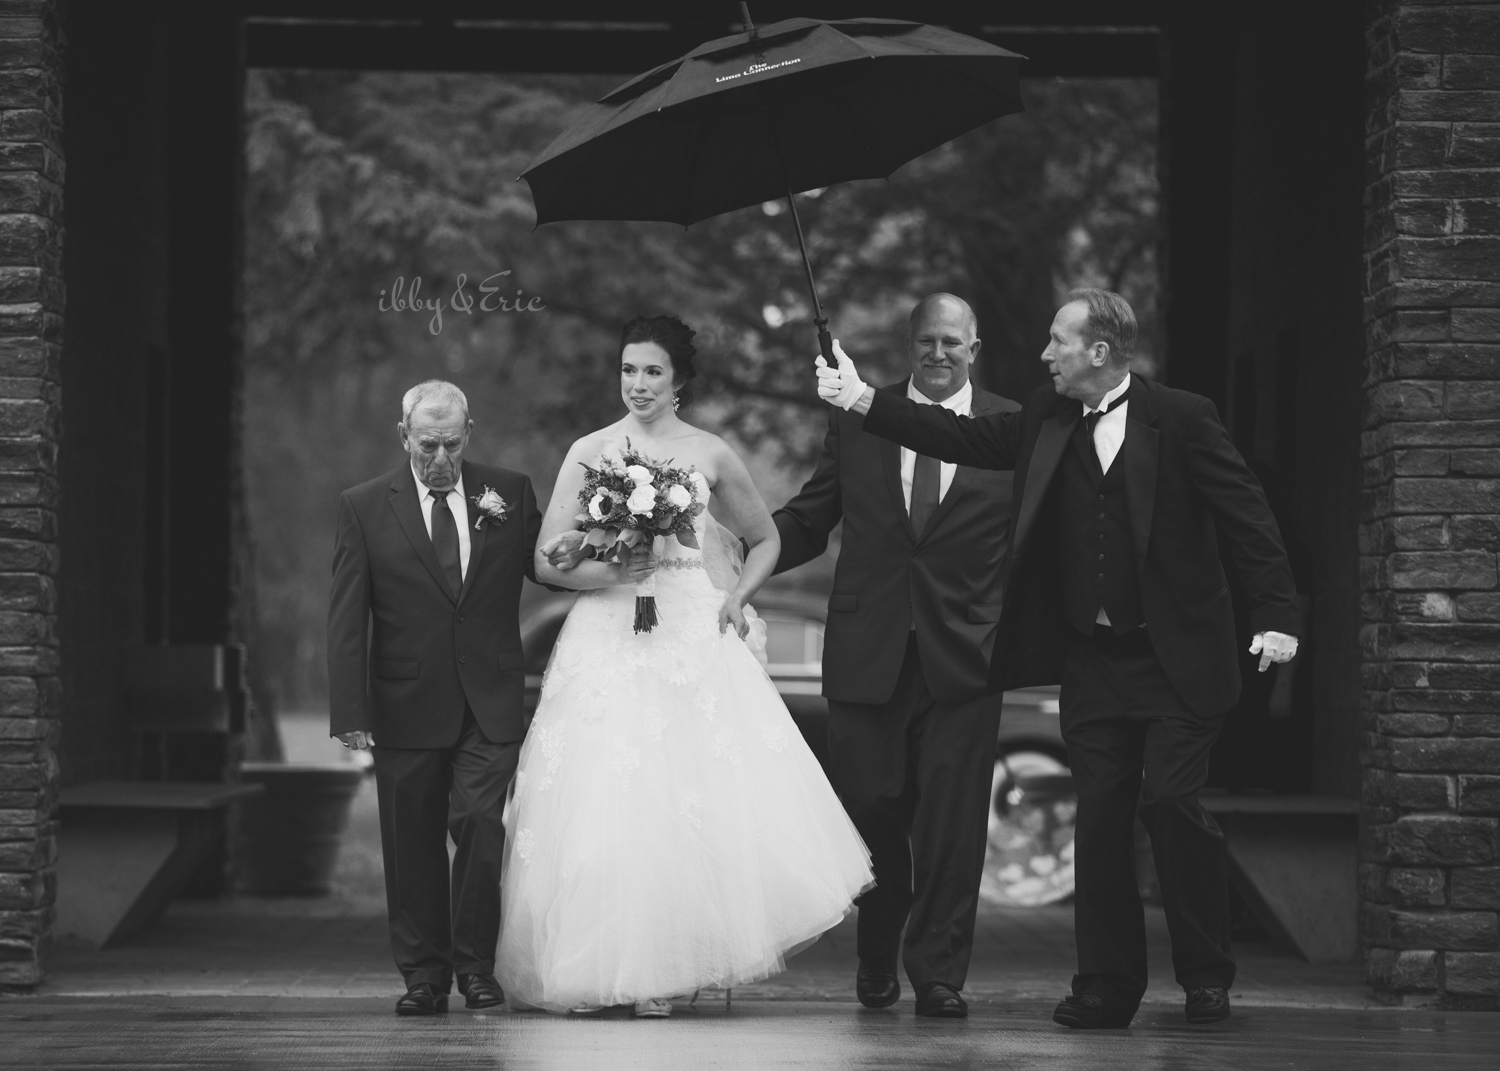 Driver holds a black umbrella over the bride, as she is escorted down the aisle by her dad and grandpa.